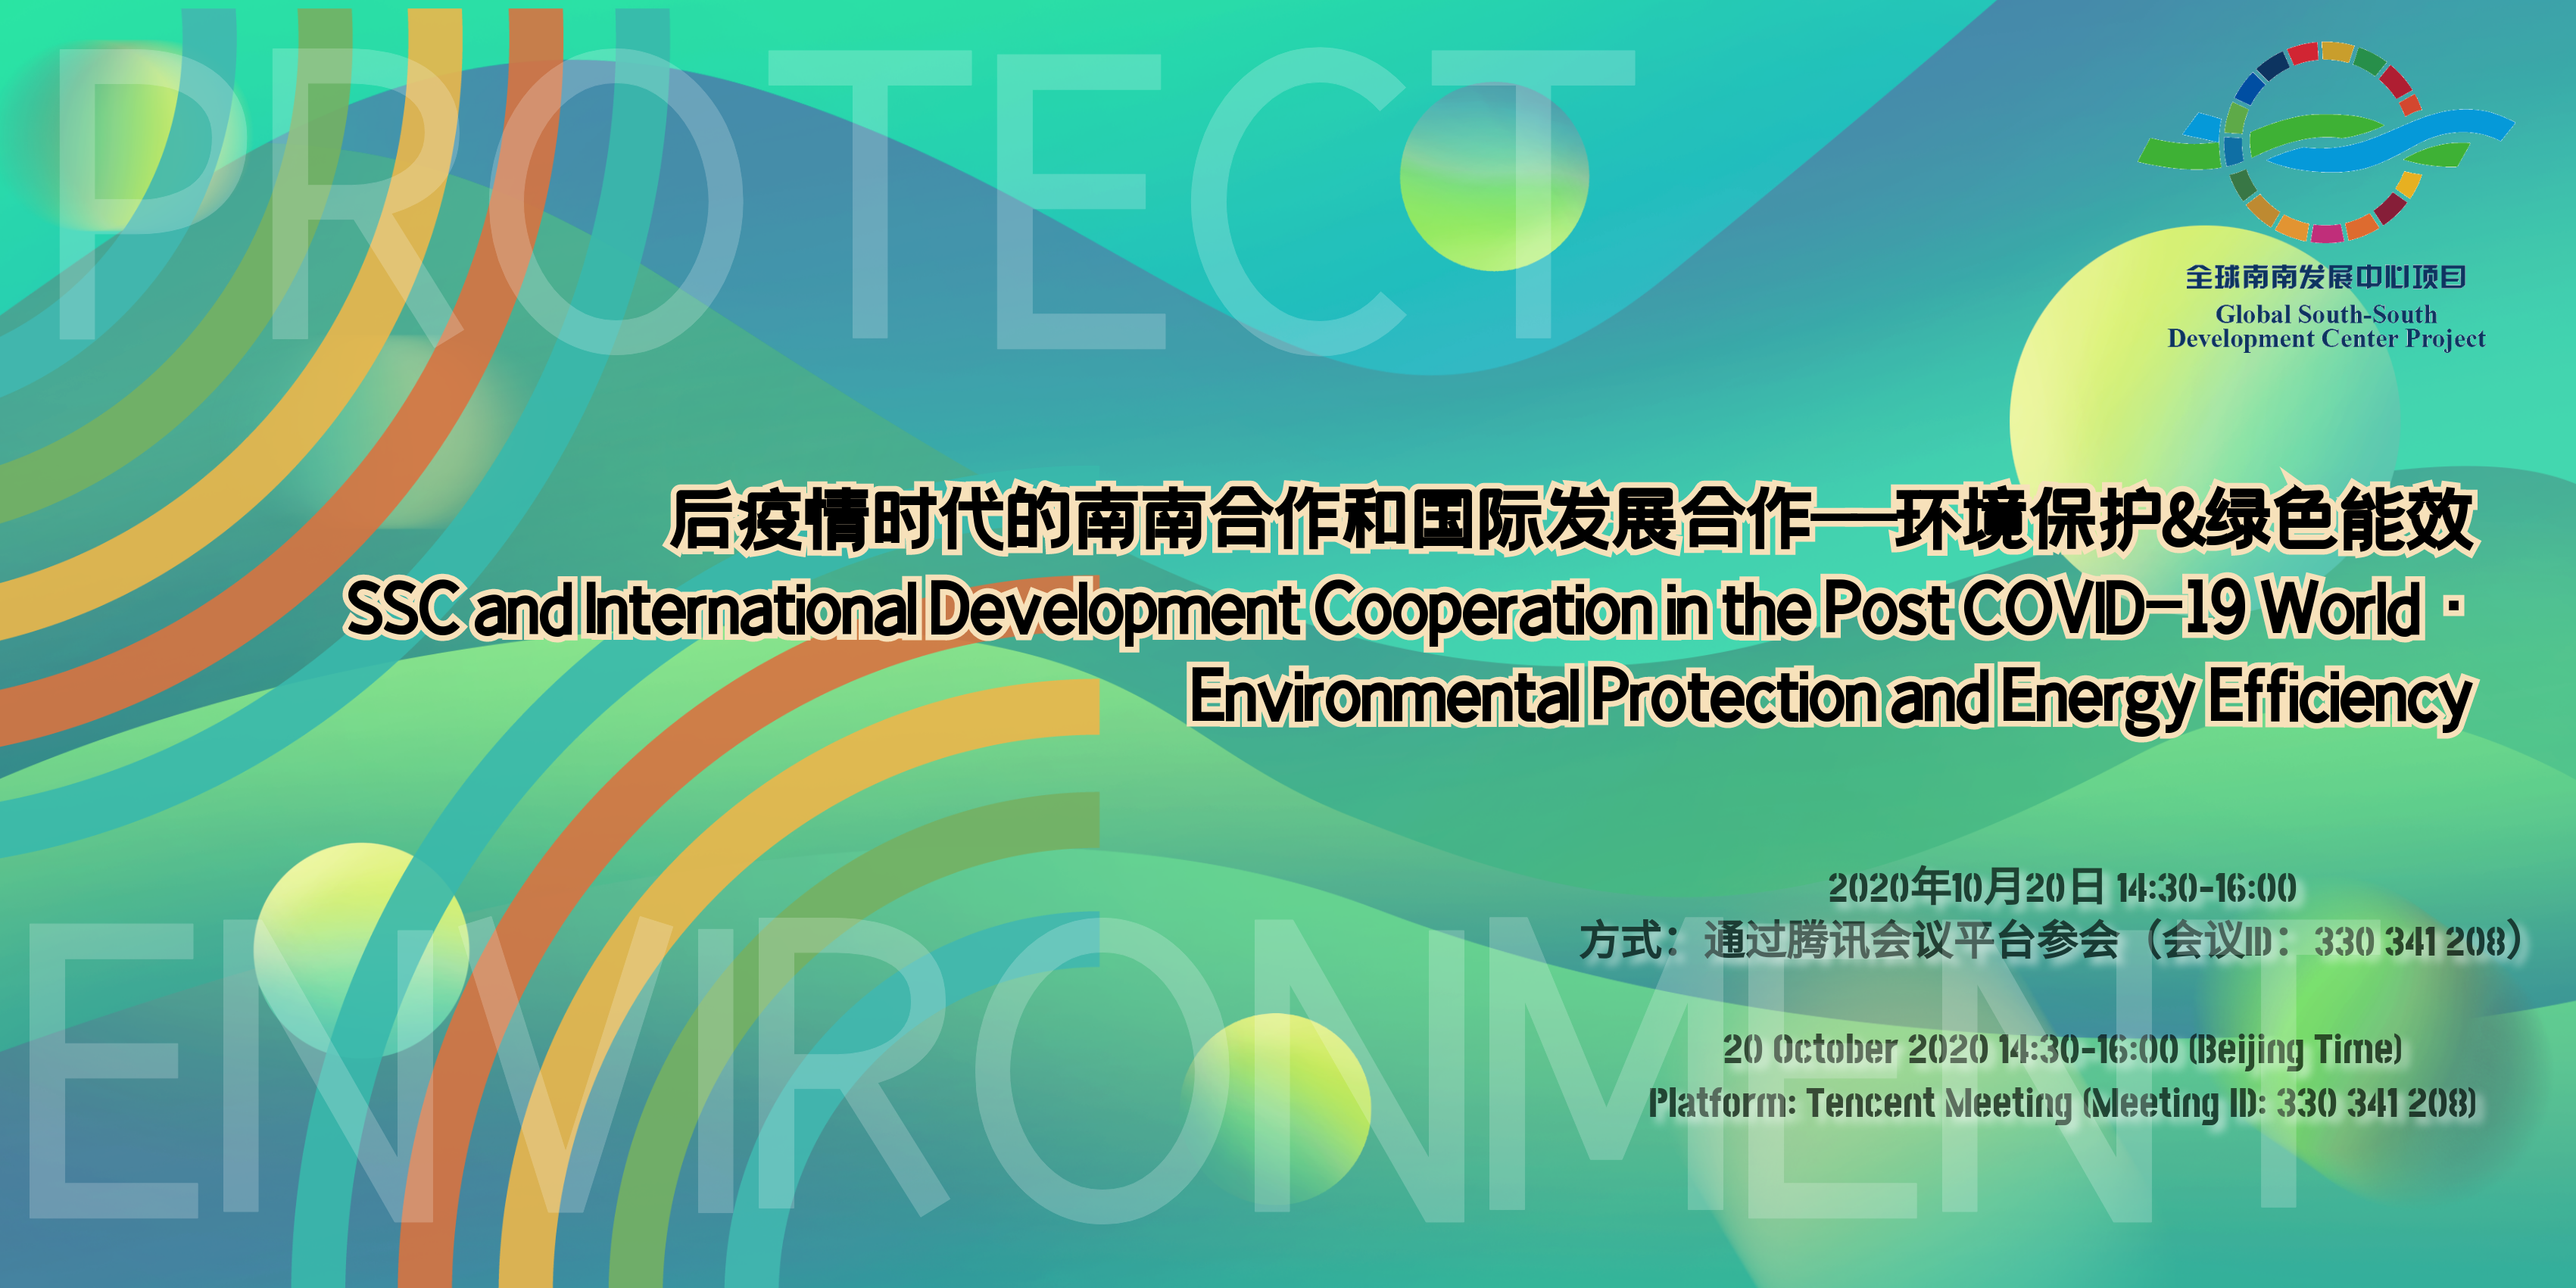 South-South Cooperation & International Development Cooperation in the Post COVID-19 World: Environmental Protection & Energy Efficiency